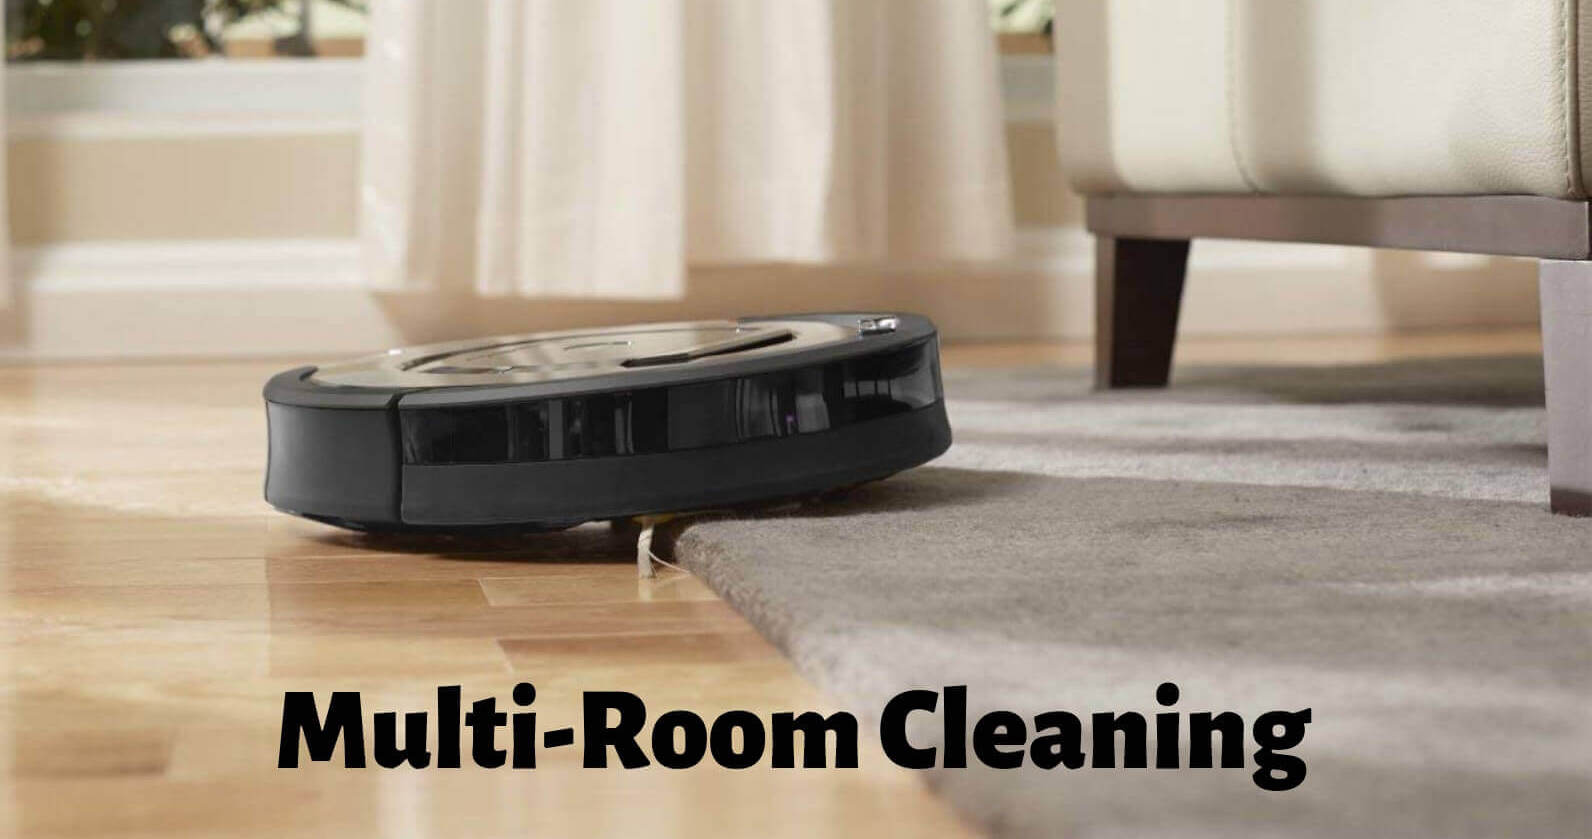 roomba Multi-Room Cleaning